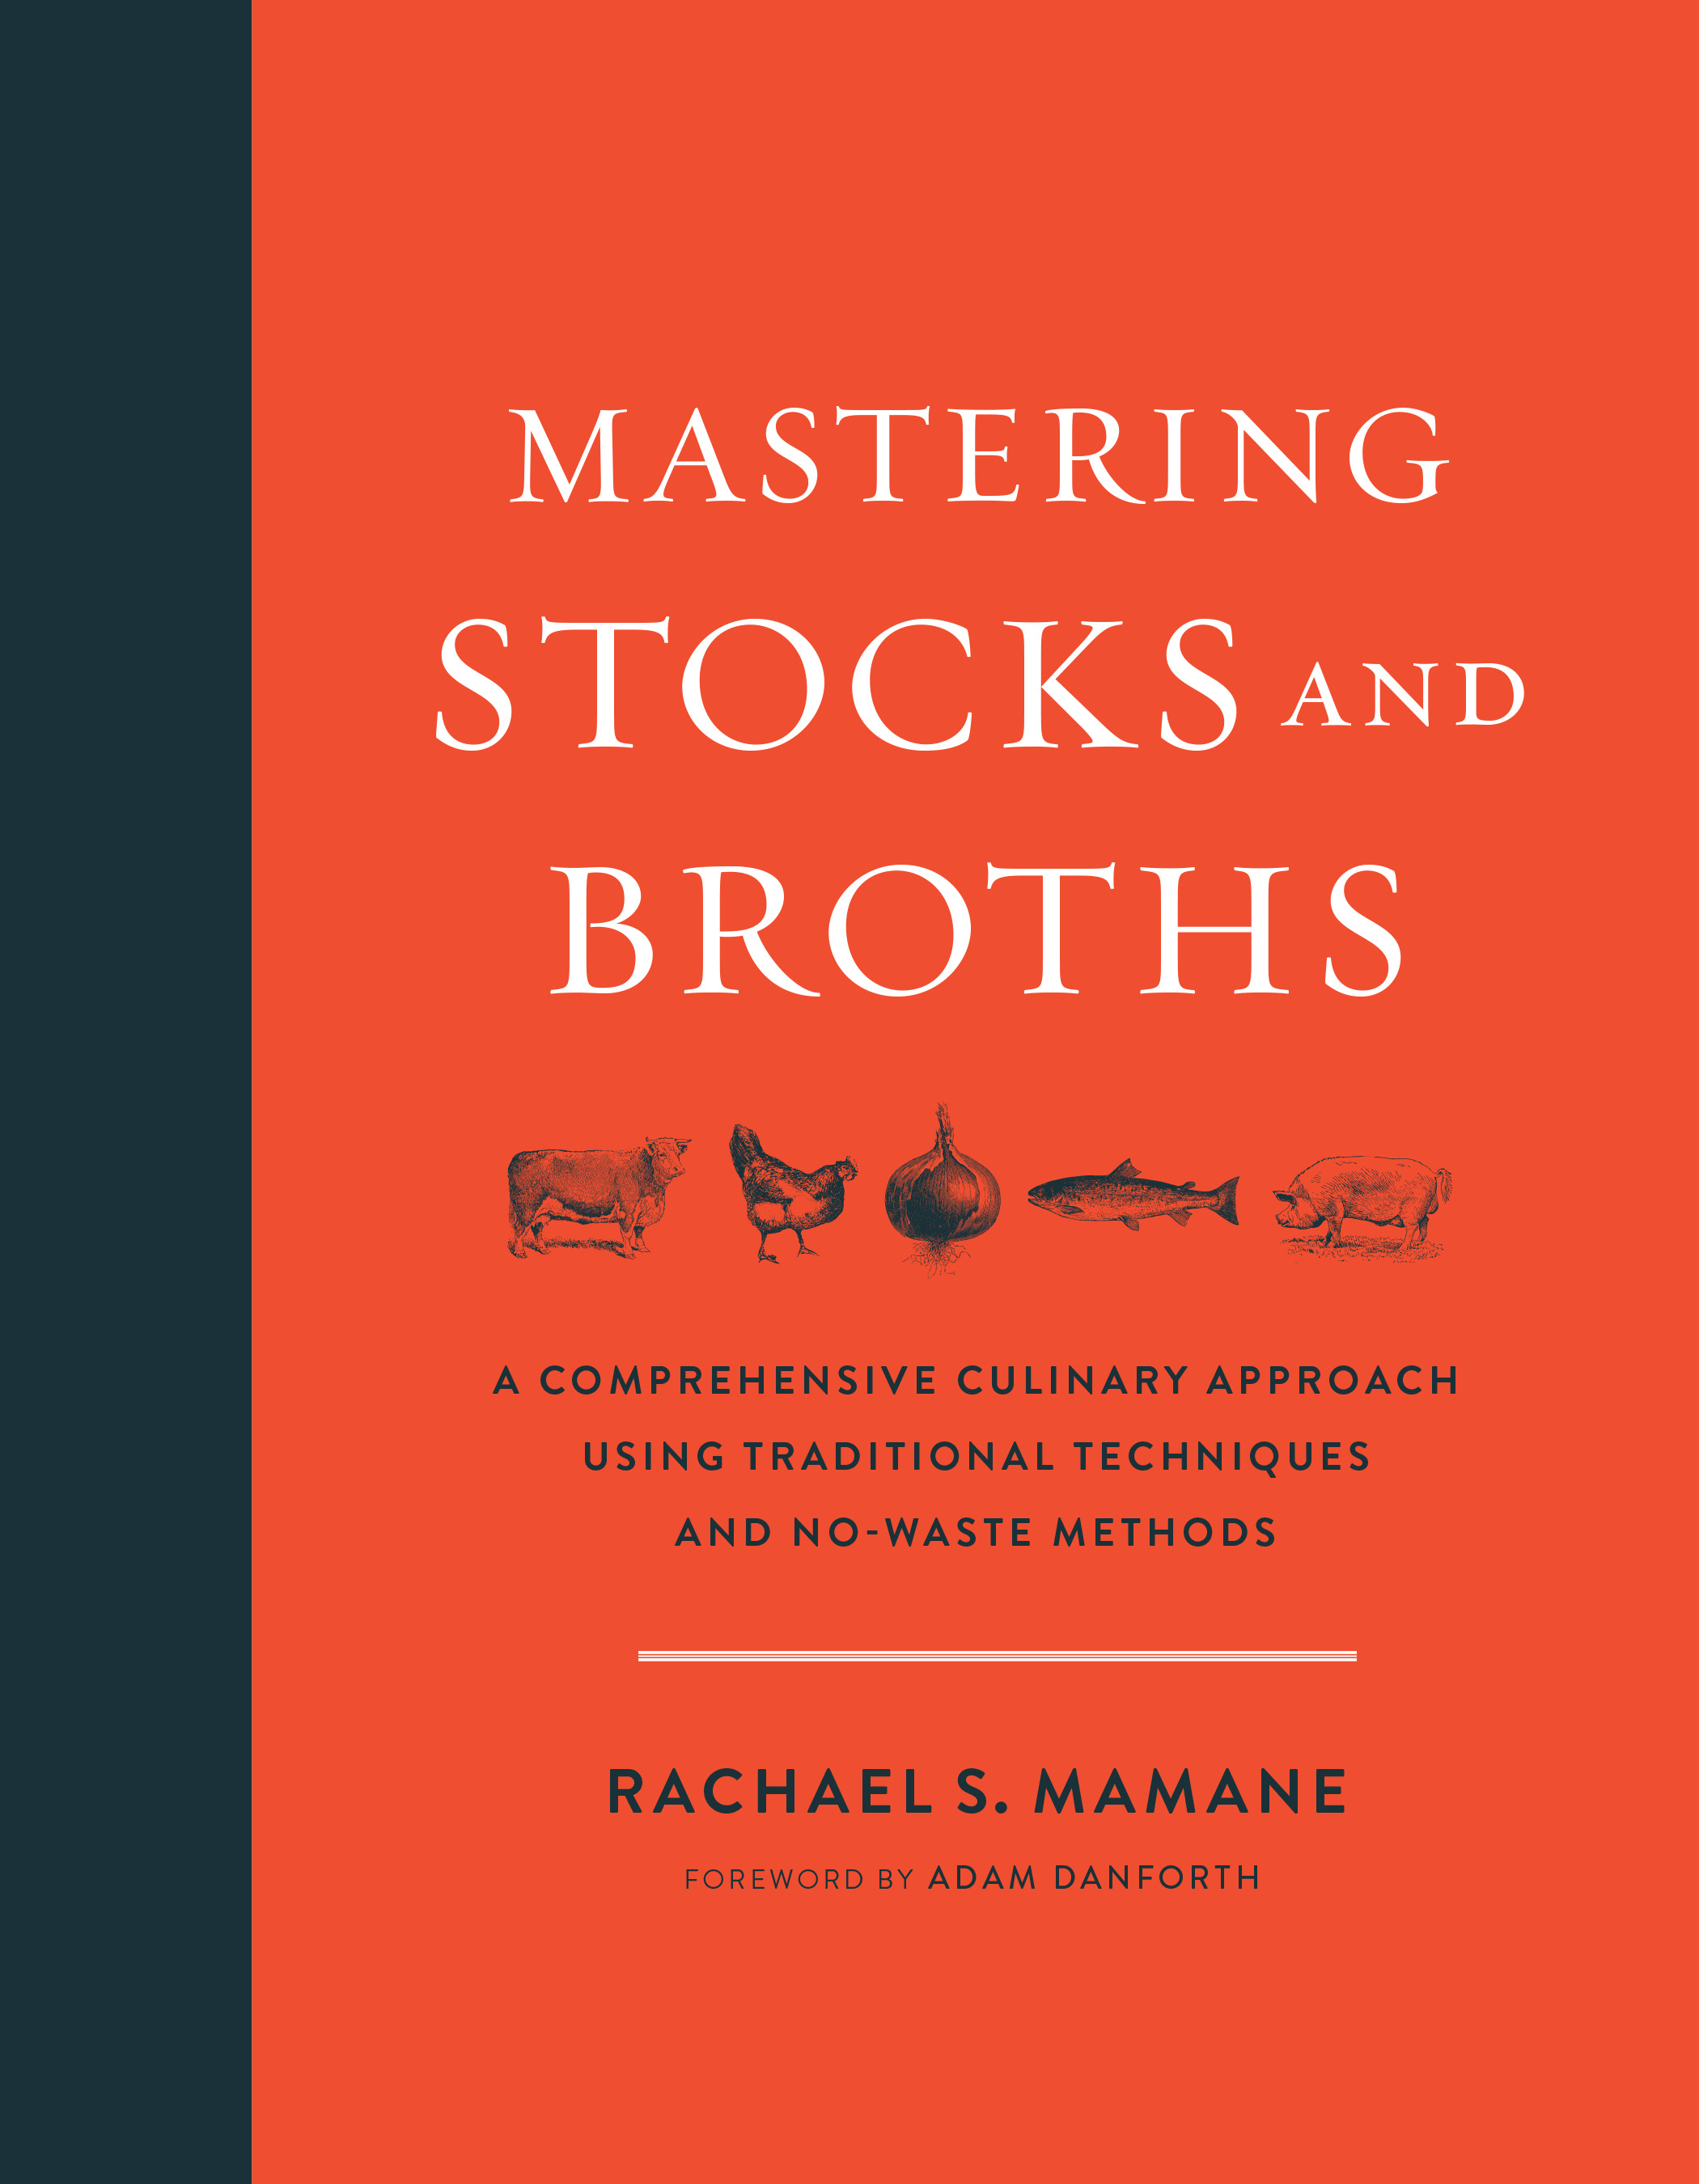 Mastering Stocks and Broths cover[2].jpg